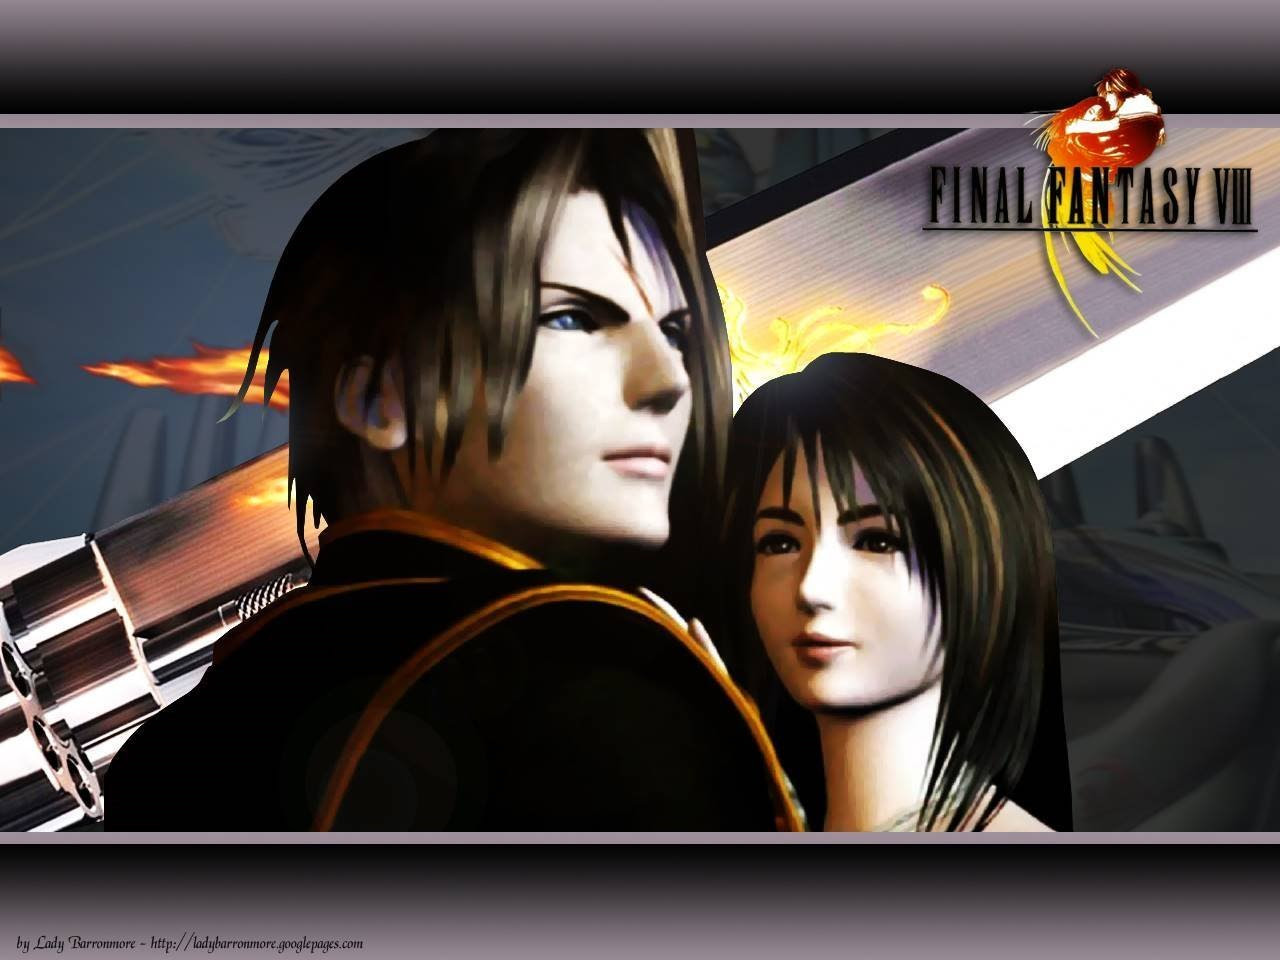 Ffviii Final Fantasy Viii Wallpaper 1603634 Fanpop